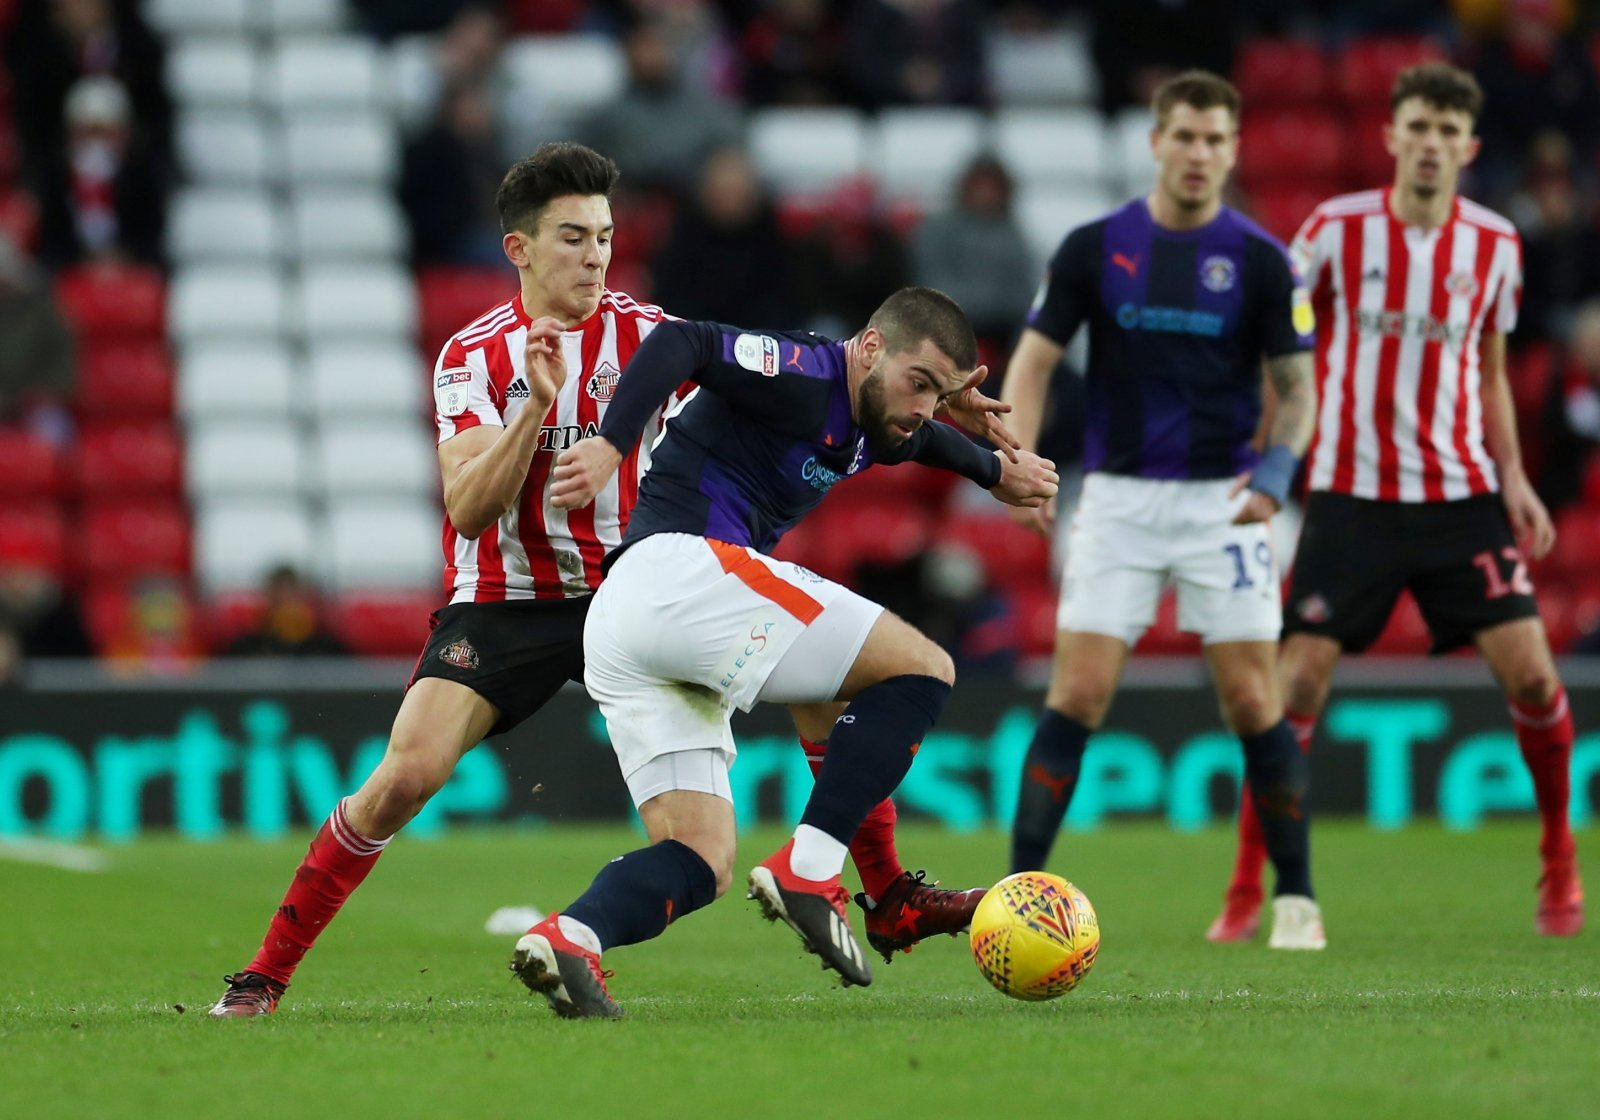 Sunderland: These fans didn't agree with Luke O'Nien's red card